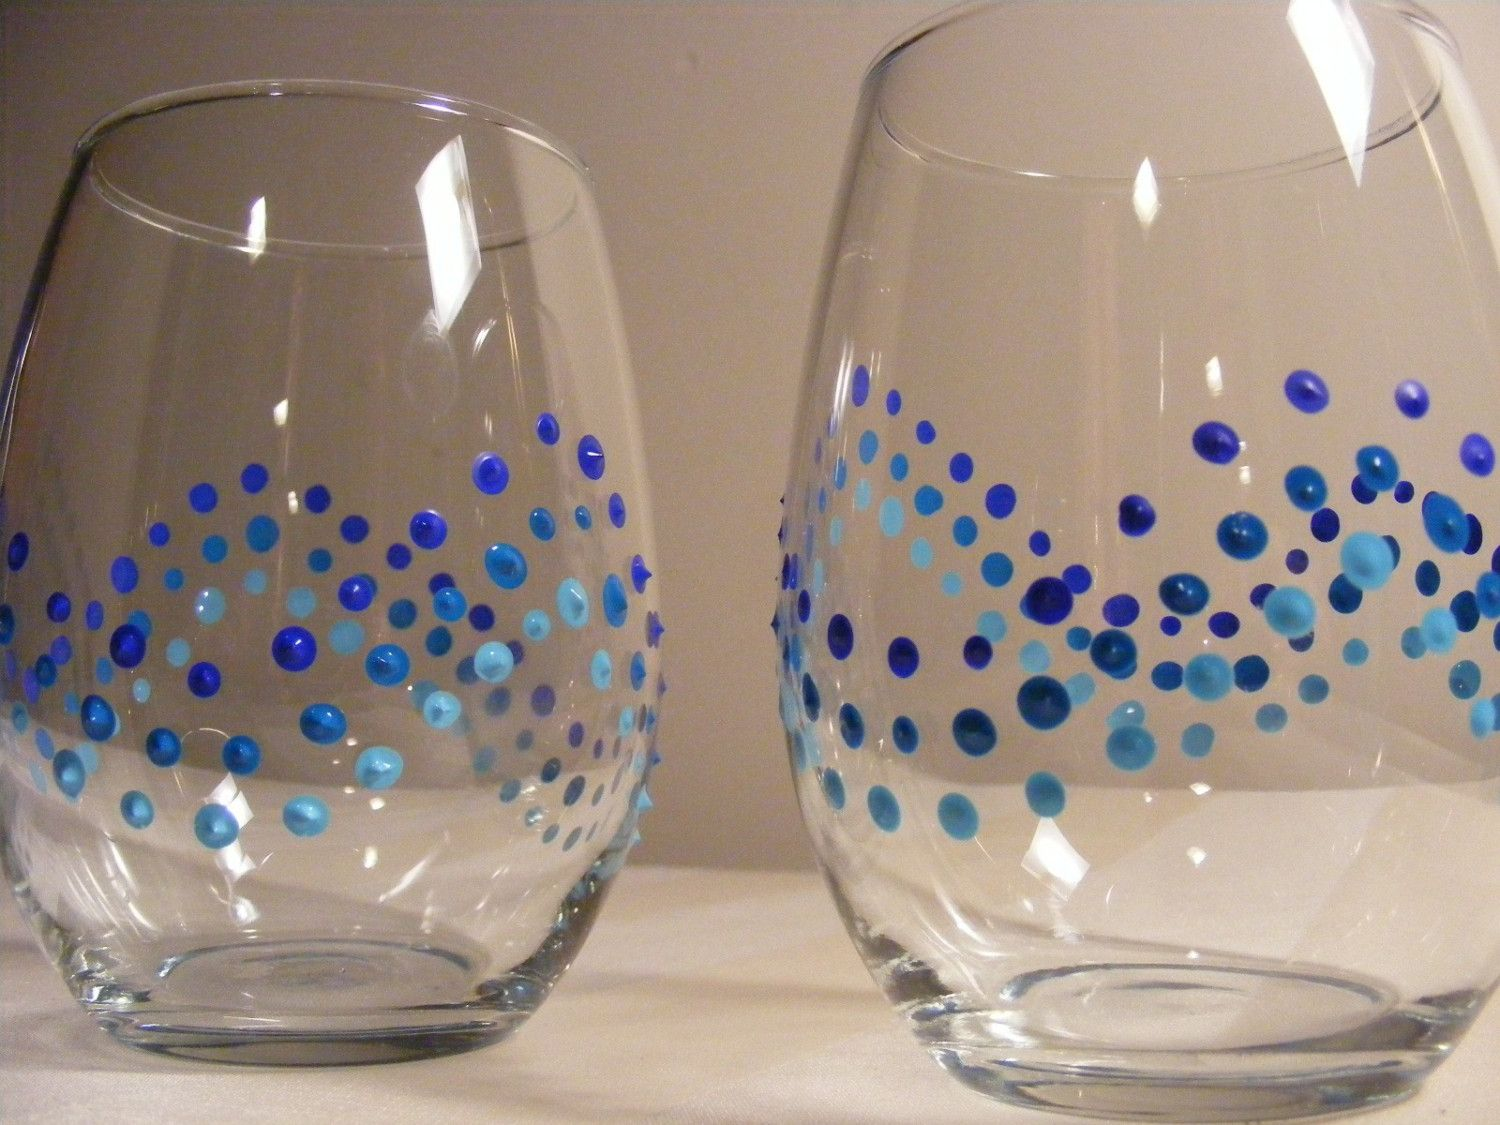 painted wine glasses with blue polka dots  - perfect for a beach wedding. $25.00, via Etsy.